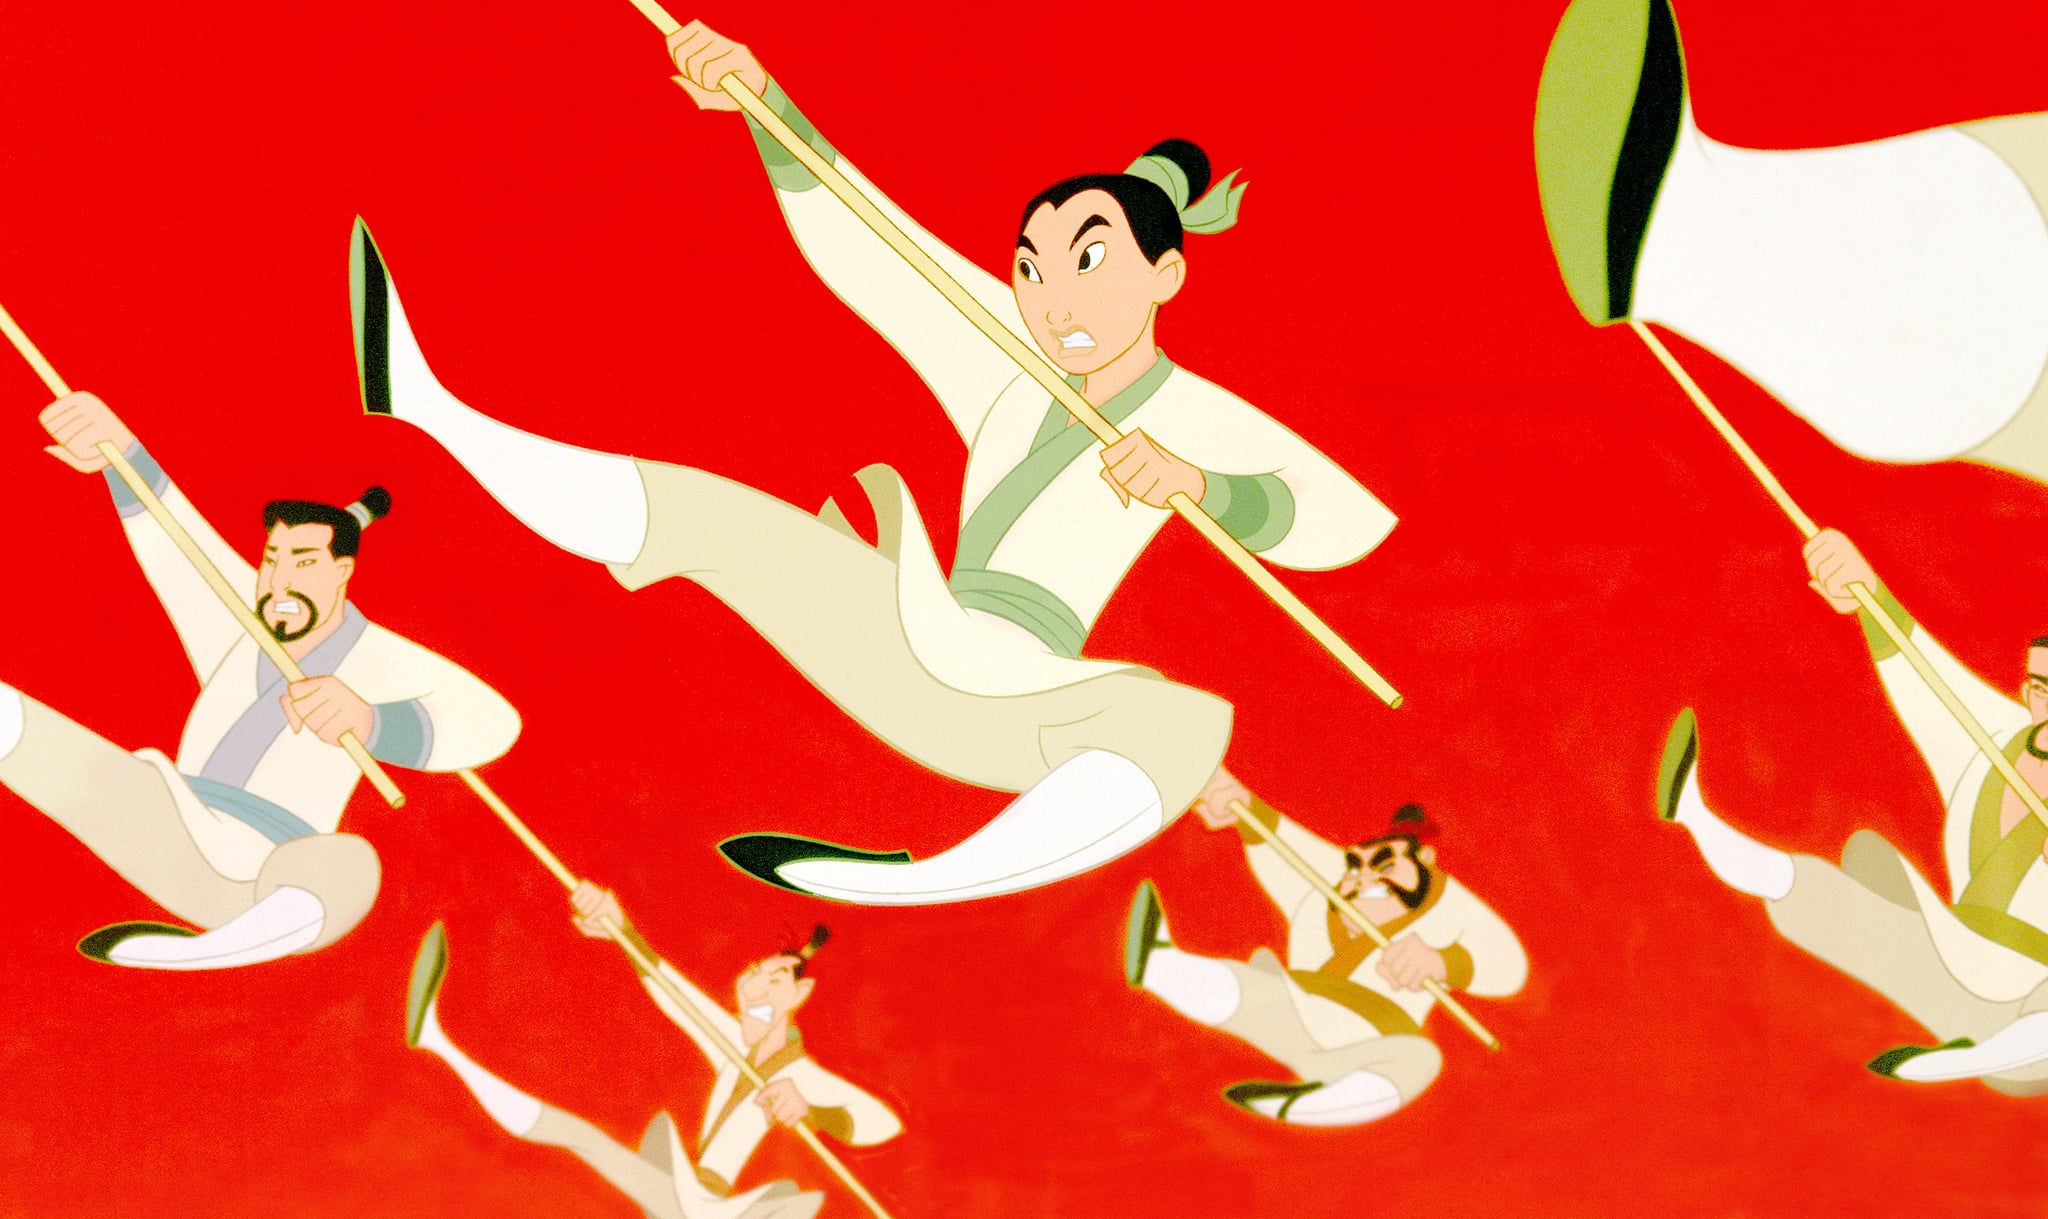 MULAN, 1998. (c) Buena Vista Pictures/ Courtesy: Everett Collection.